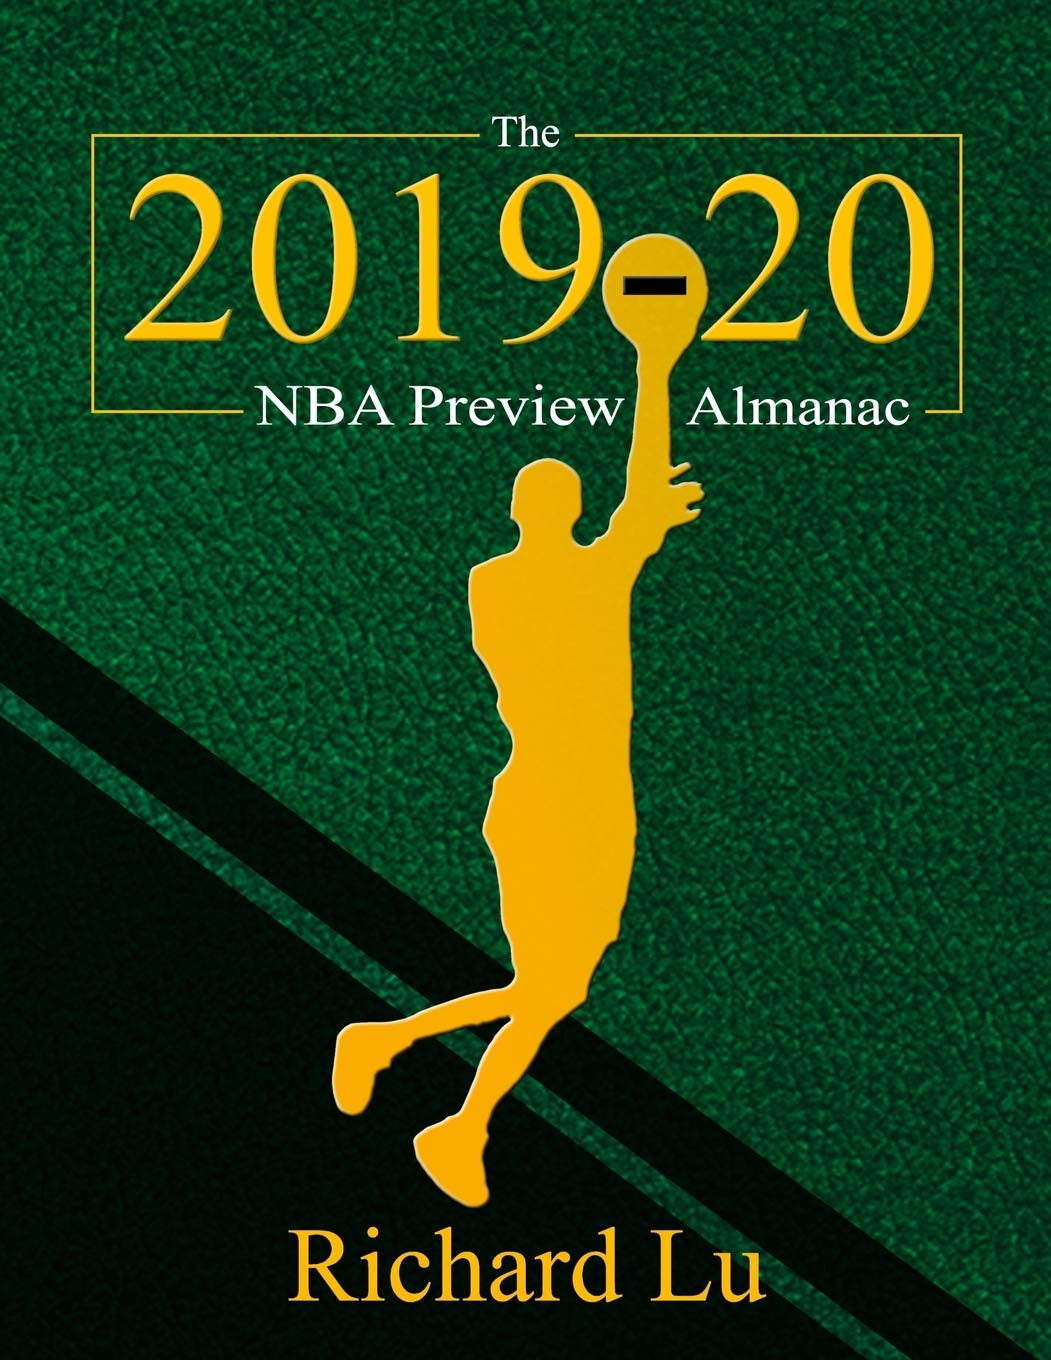 Image OfThe 2019-20 NBA Preview Almanac